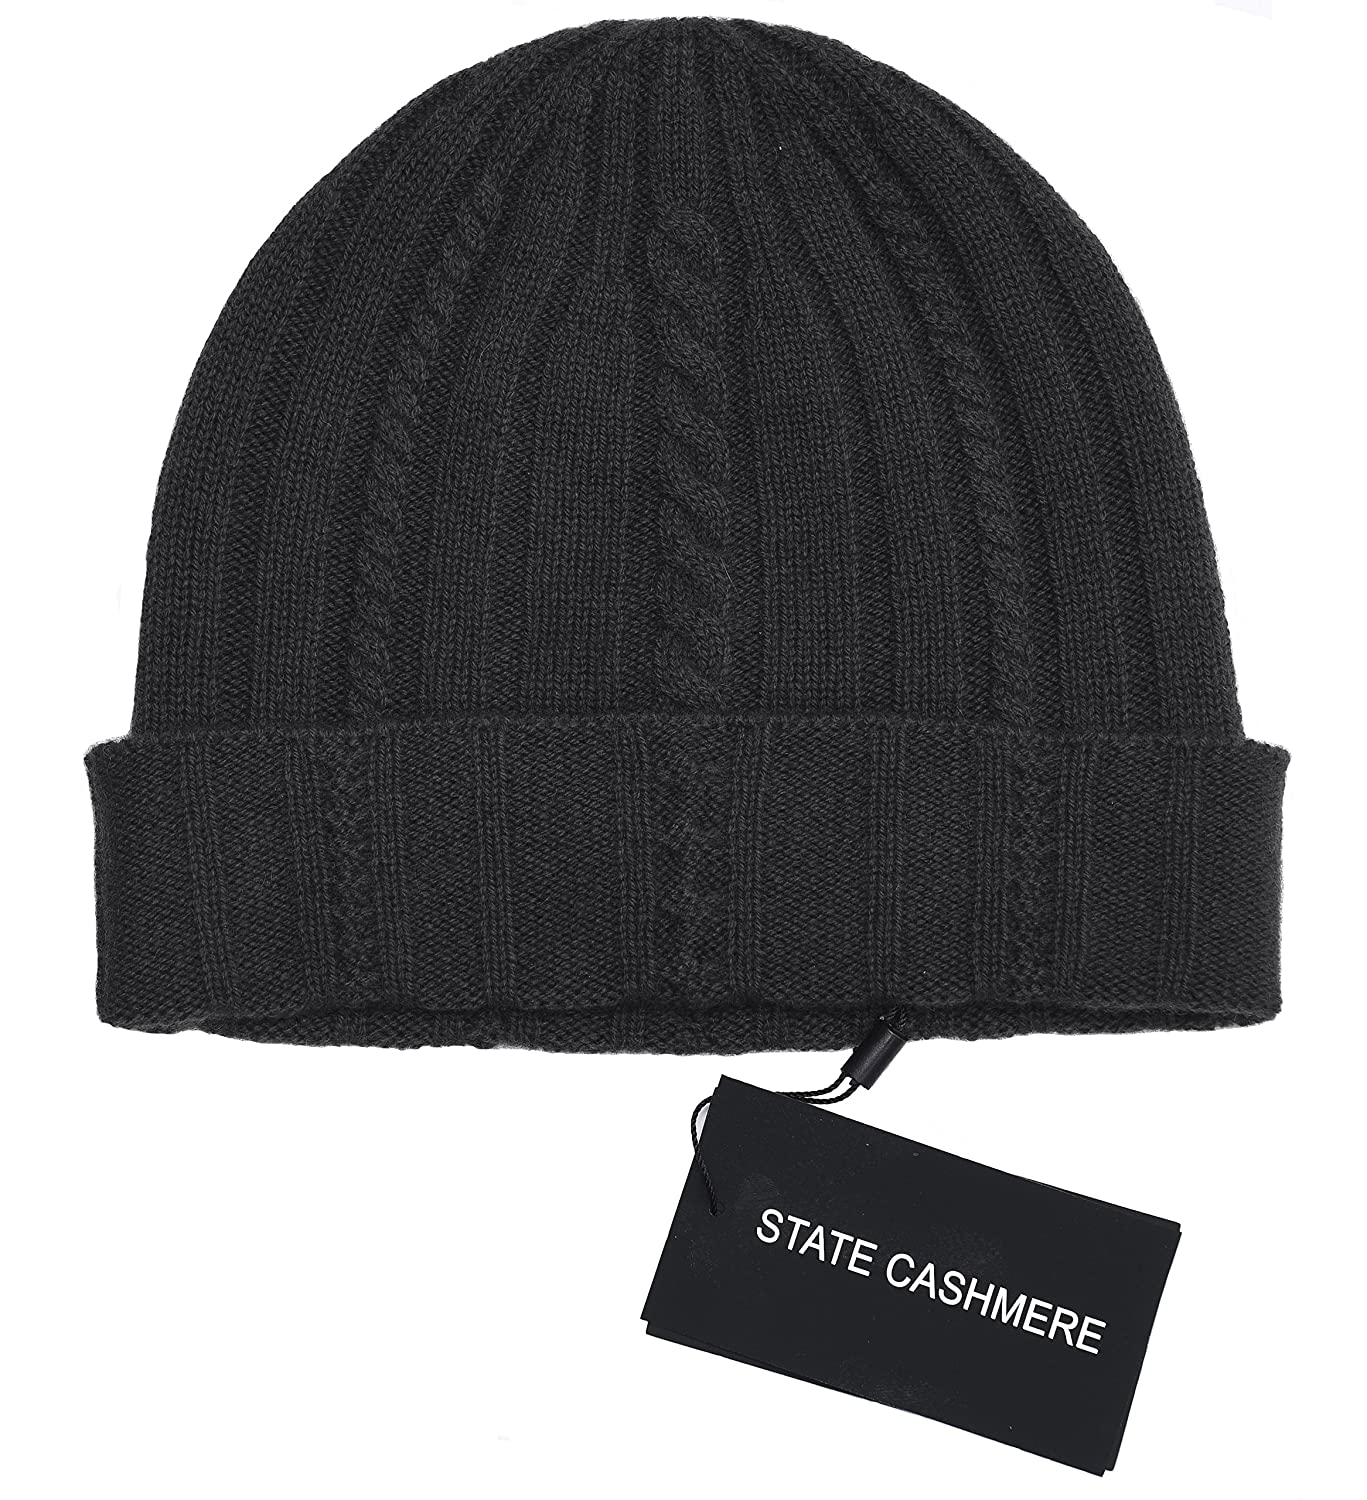 a8df895b004 State Cashmere 100% Pure Cashmere Cable Knit Beanie Hat - Ultimate  Soft